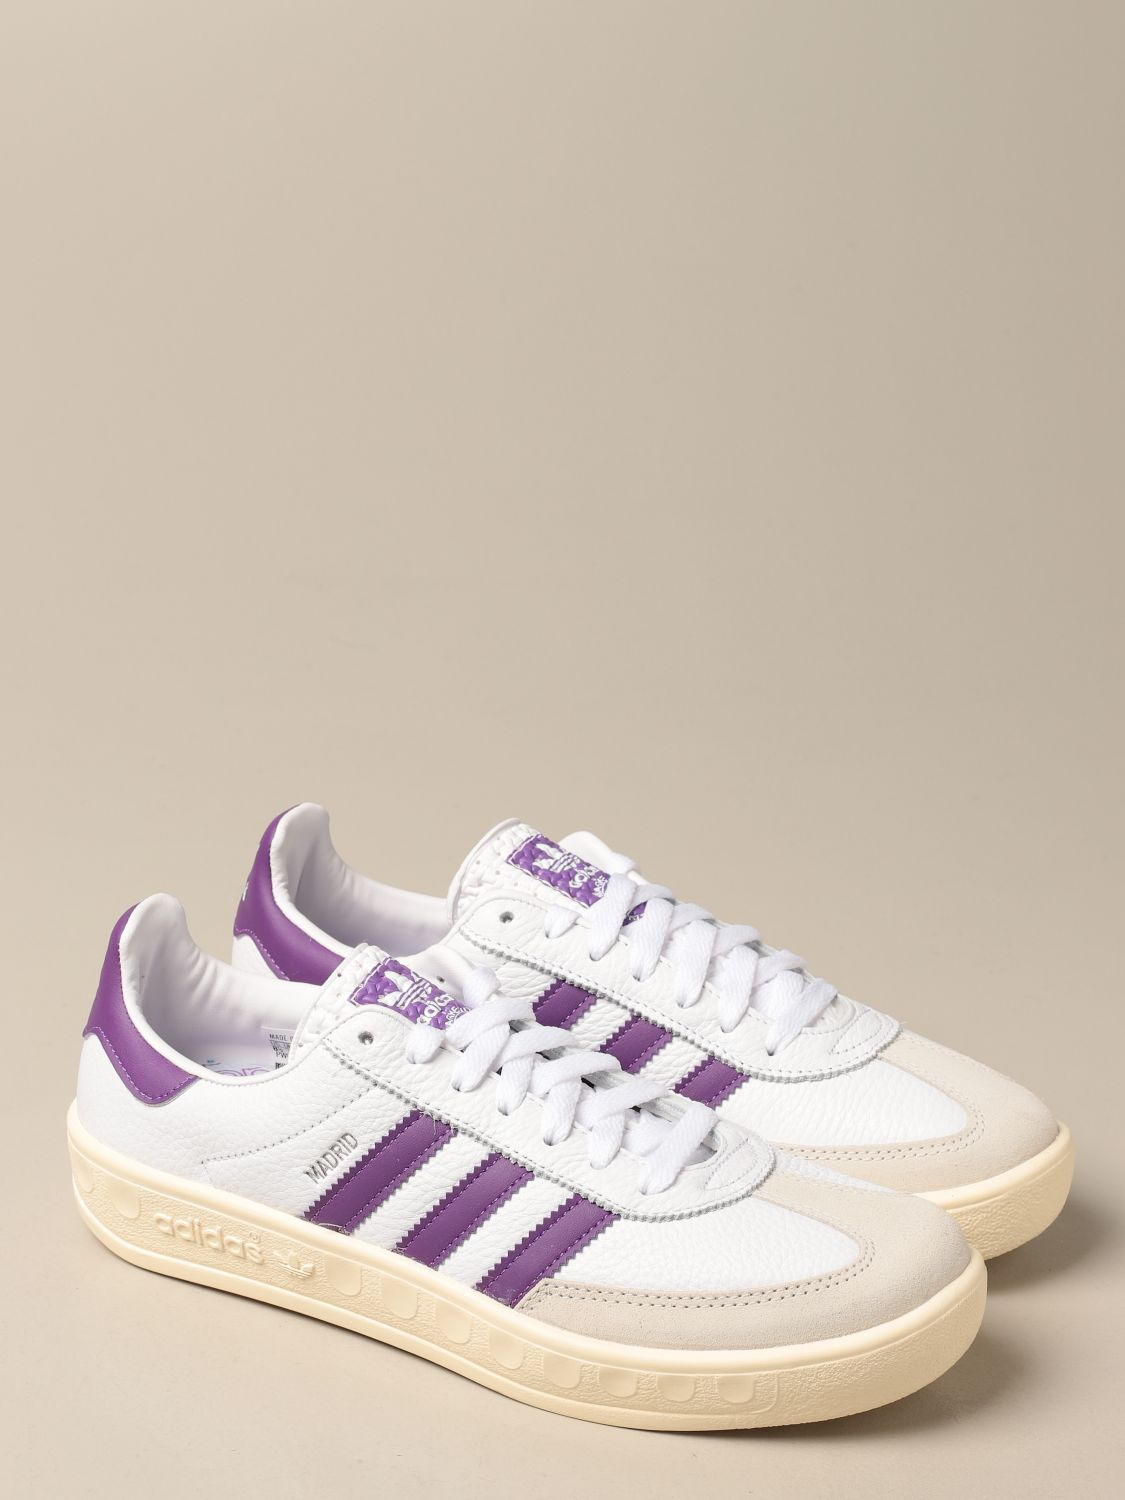 Sneakers Adidas Originals: Madrid Adidas Originals sneakers in leather and suede white 2